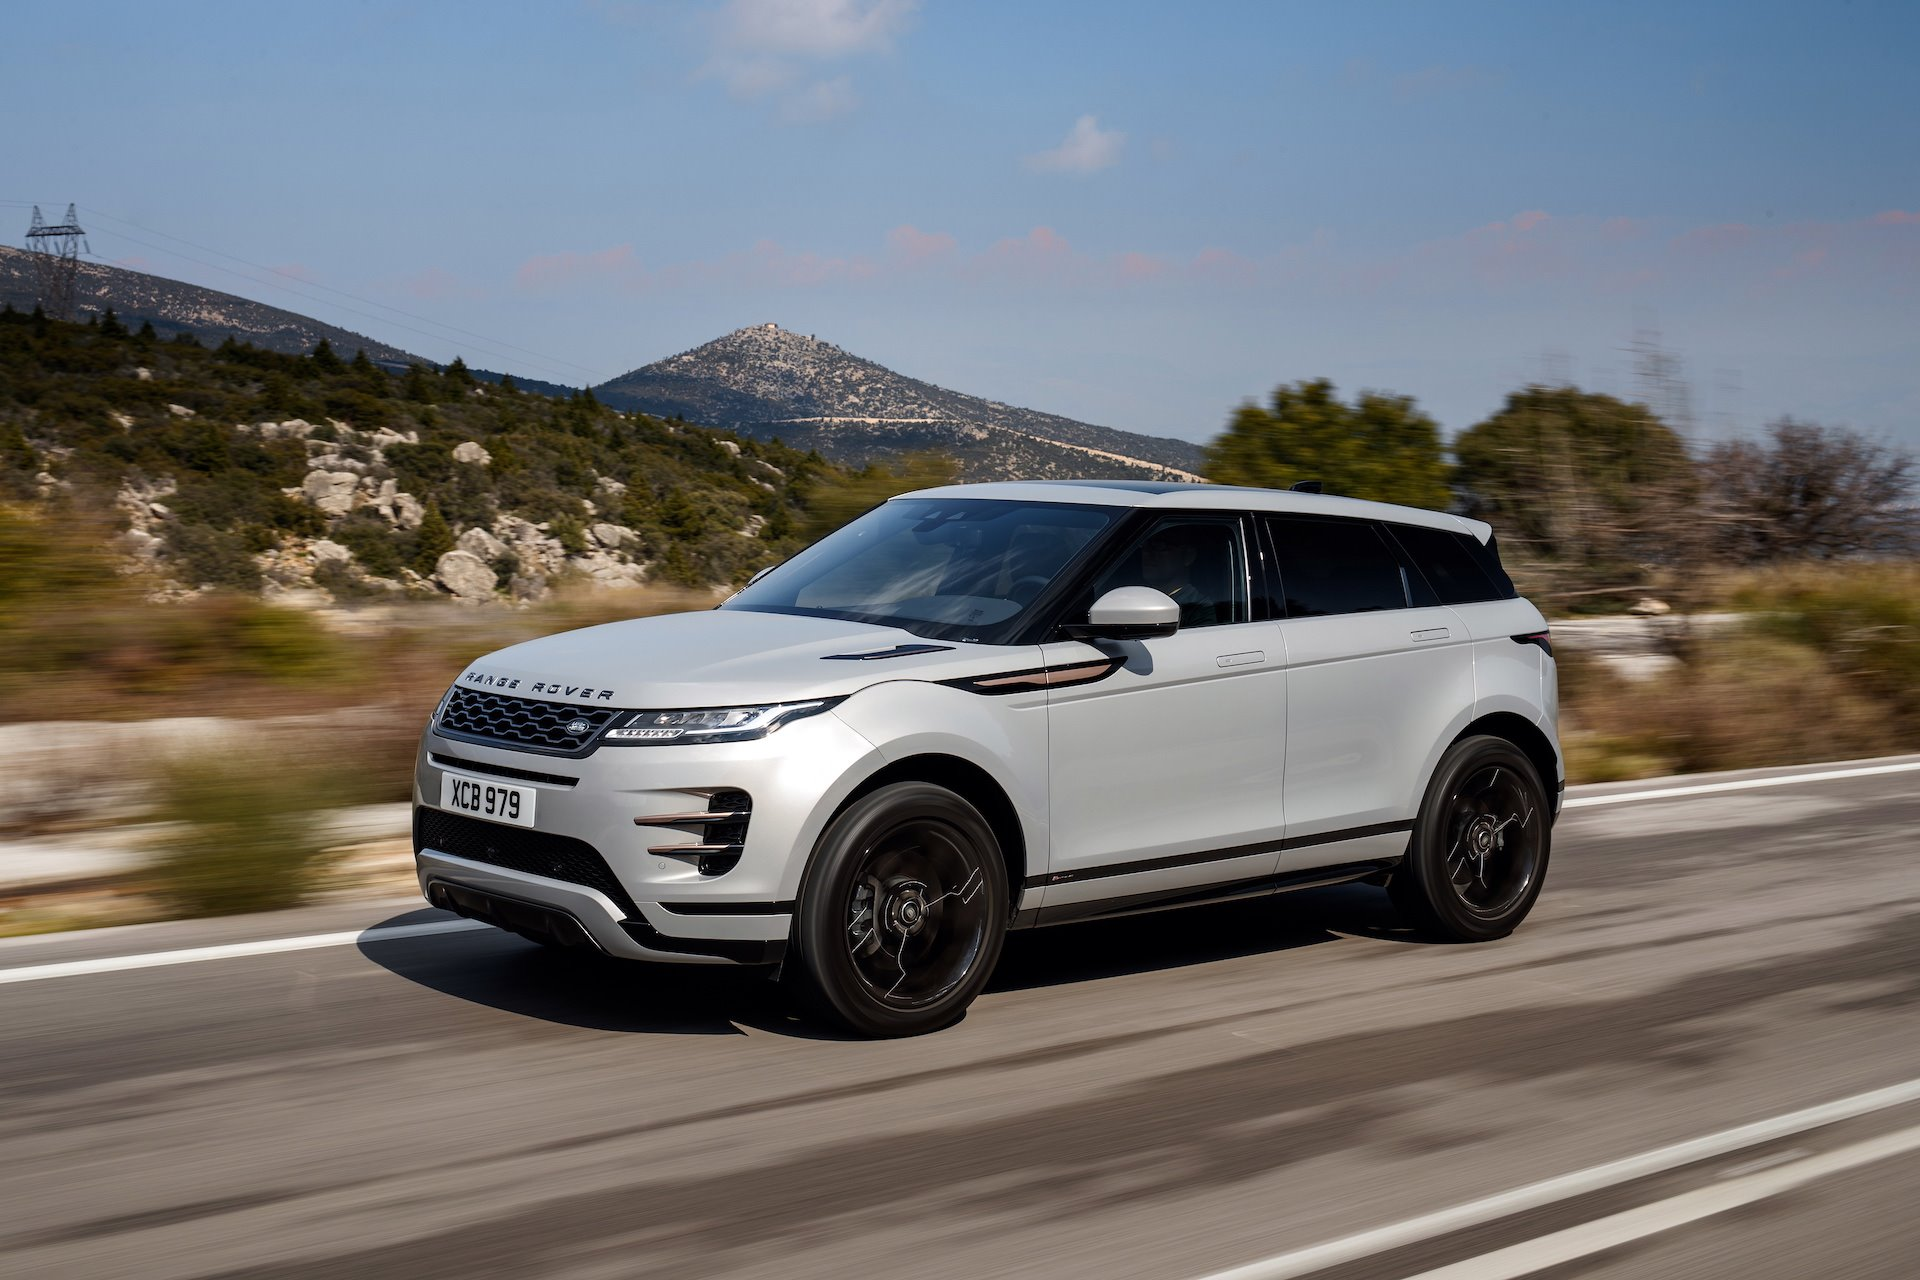 New 2020 Land Rover-Range Rover Evoque SUV Range Rover Evoque R-Dynamic S for sale $46,600 at M and V Leasing in Brooklyn NY 11223 1